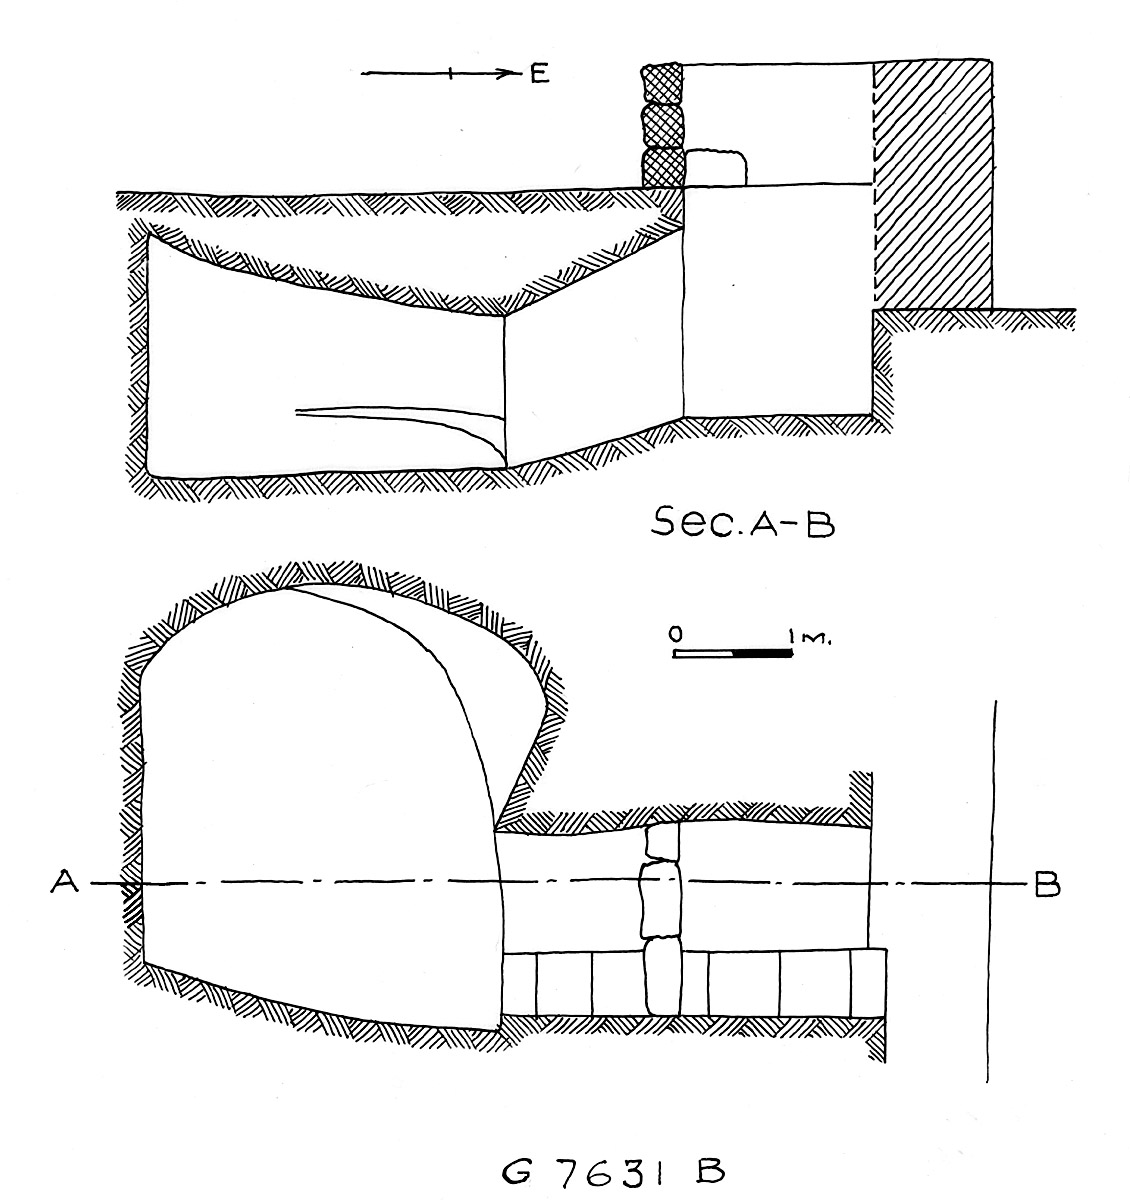 Maps and plans: G 7631, Shaft B